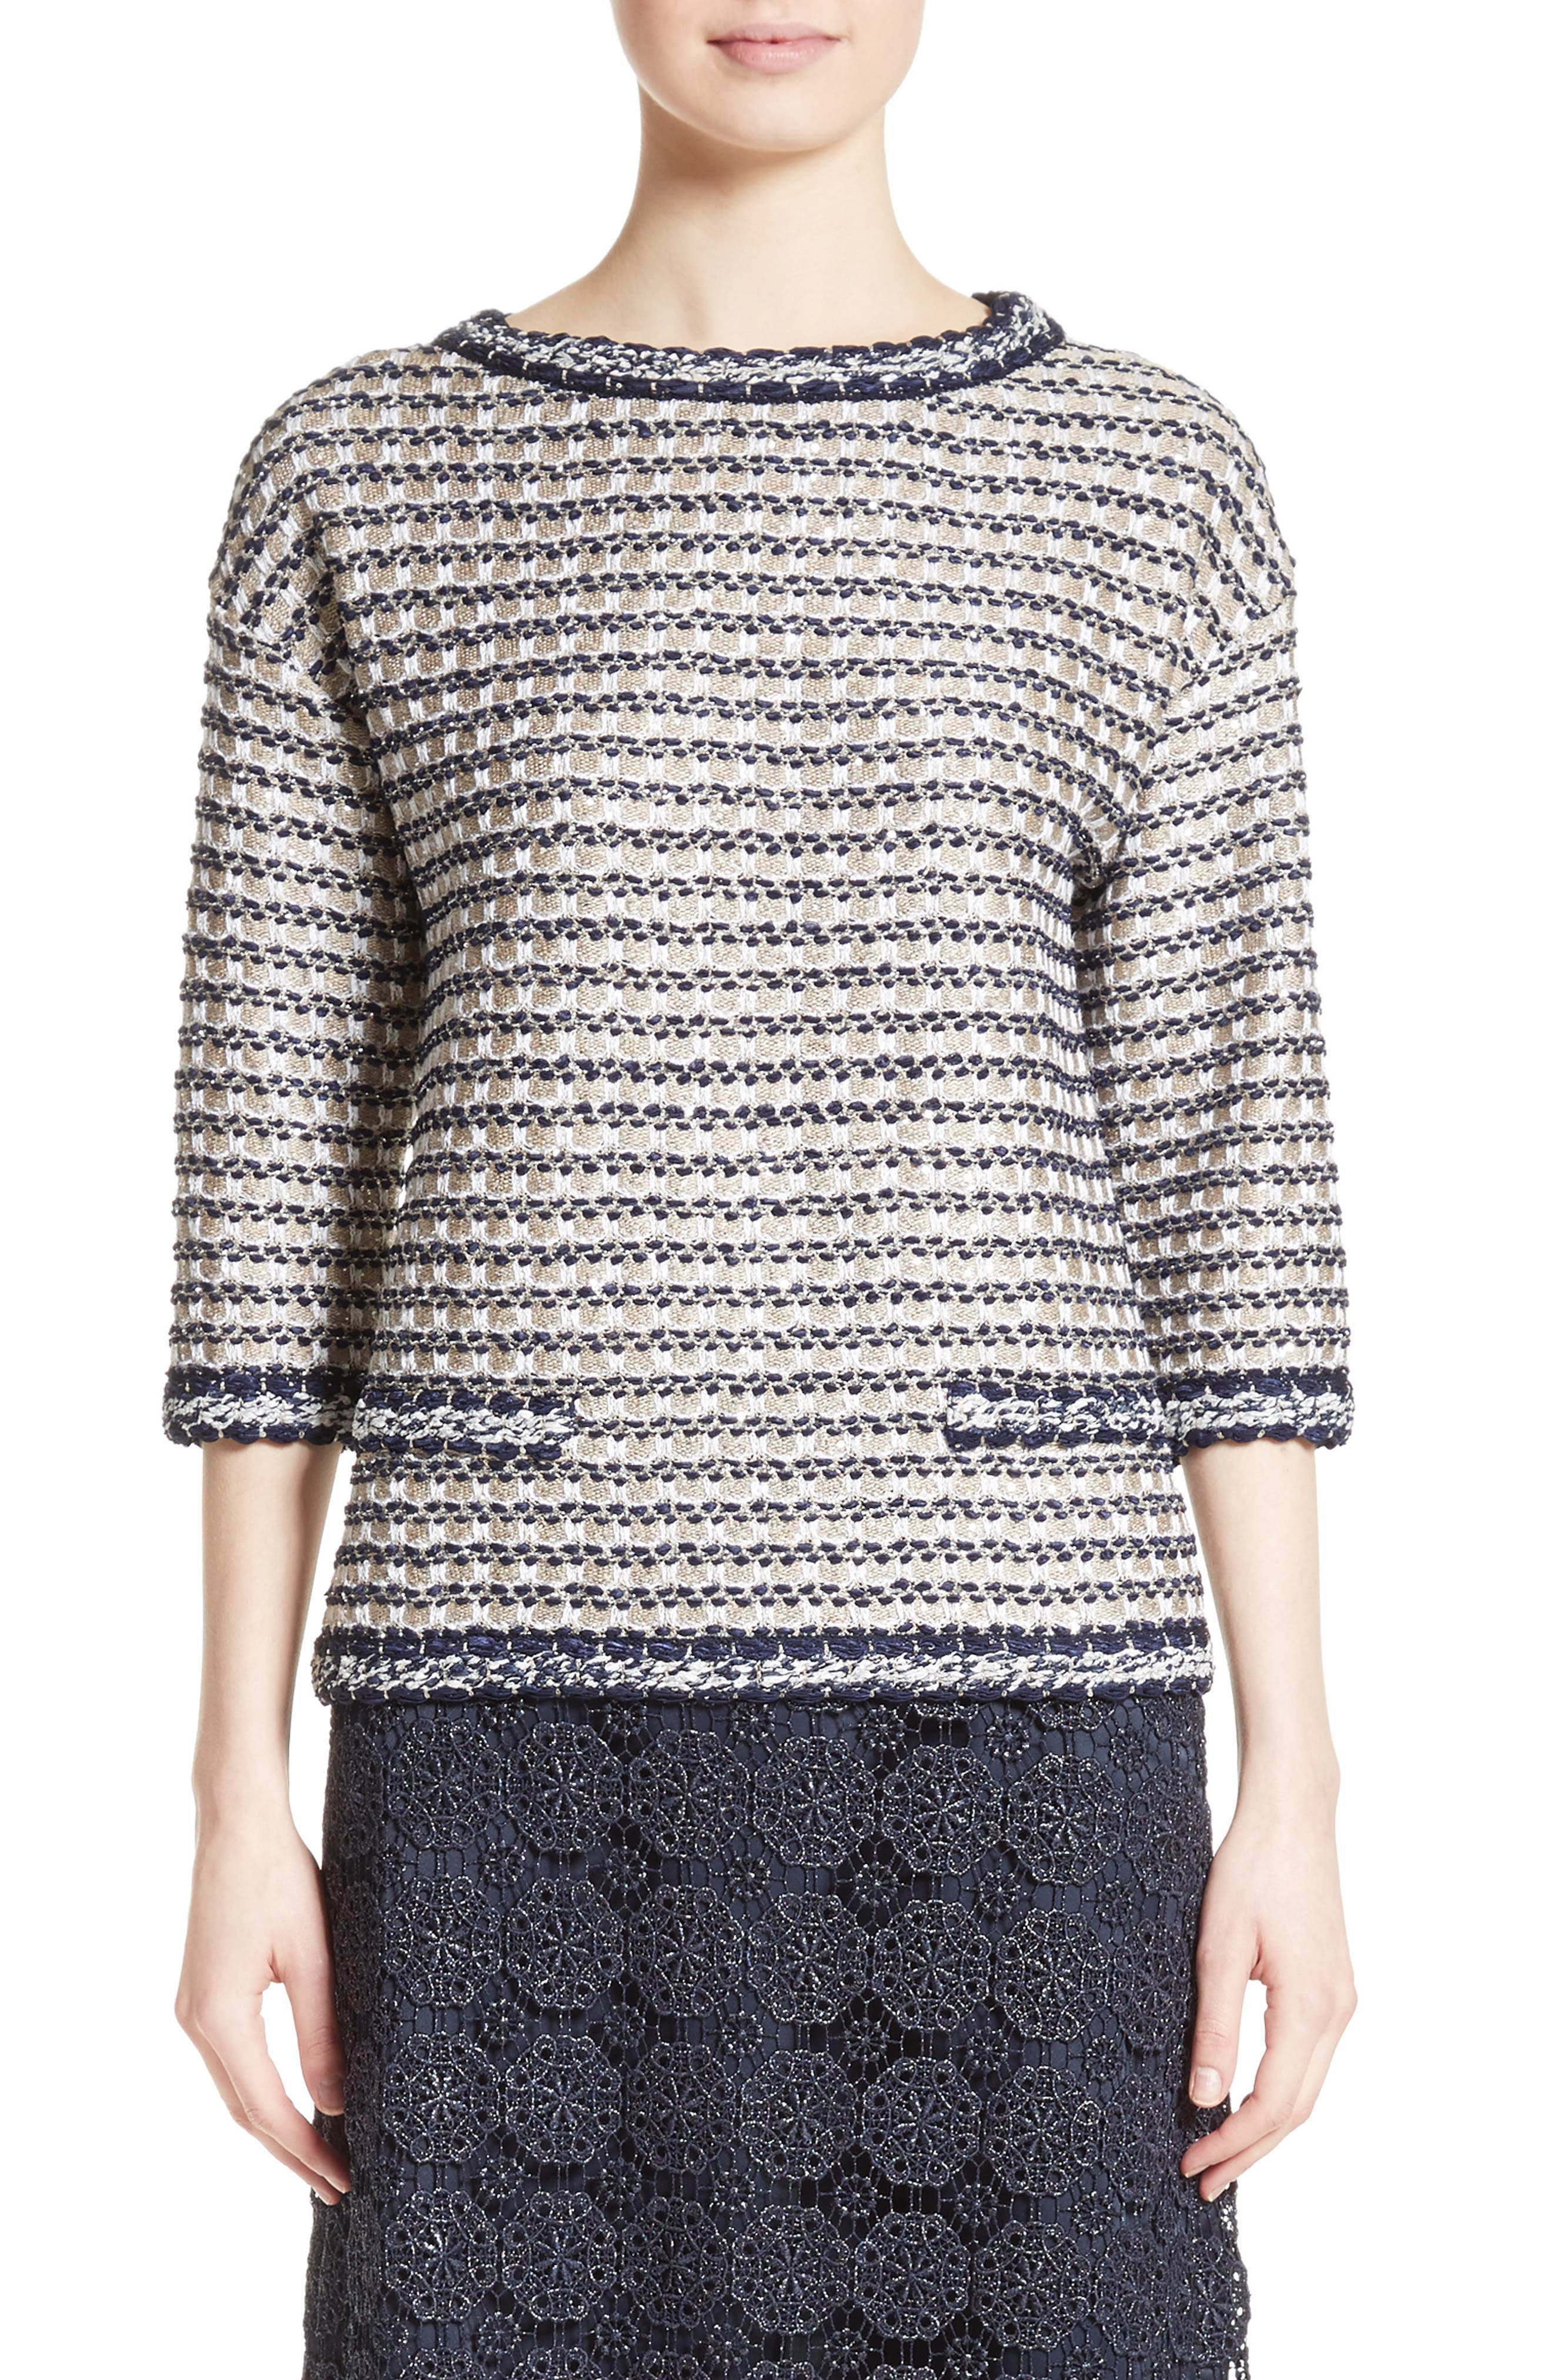 Vany Tweed Knit Top,                         Main,                         color, Gold Multi